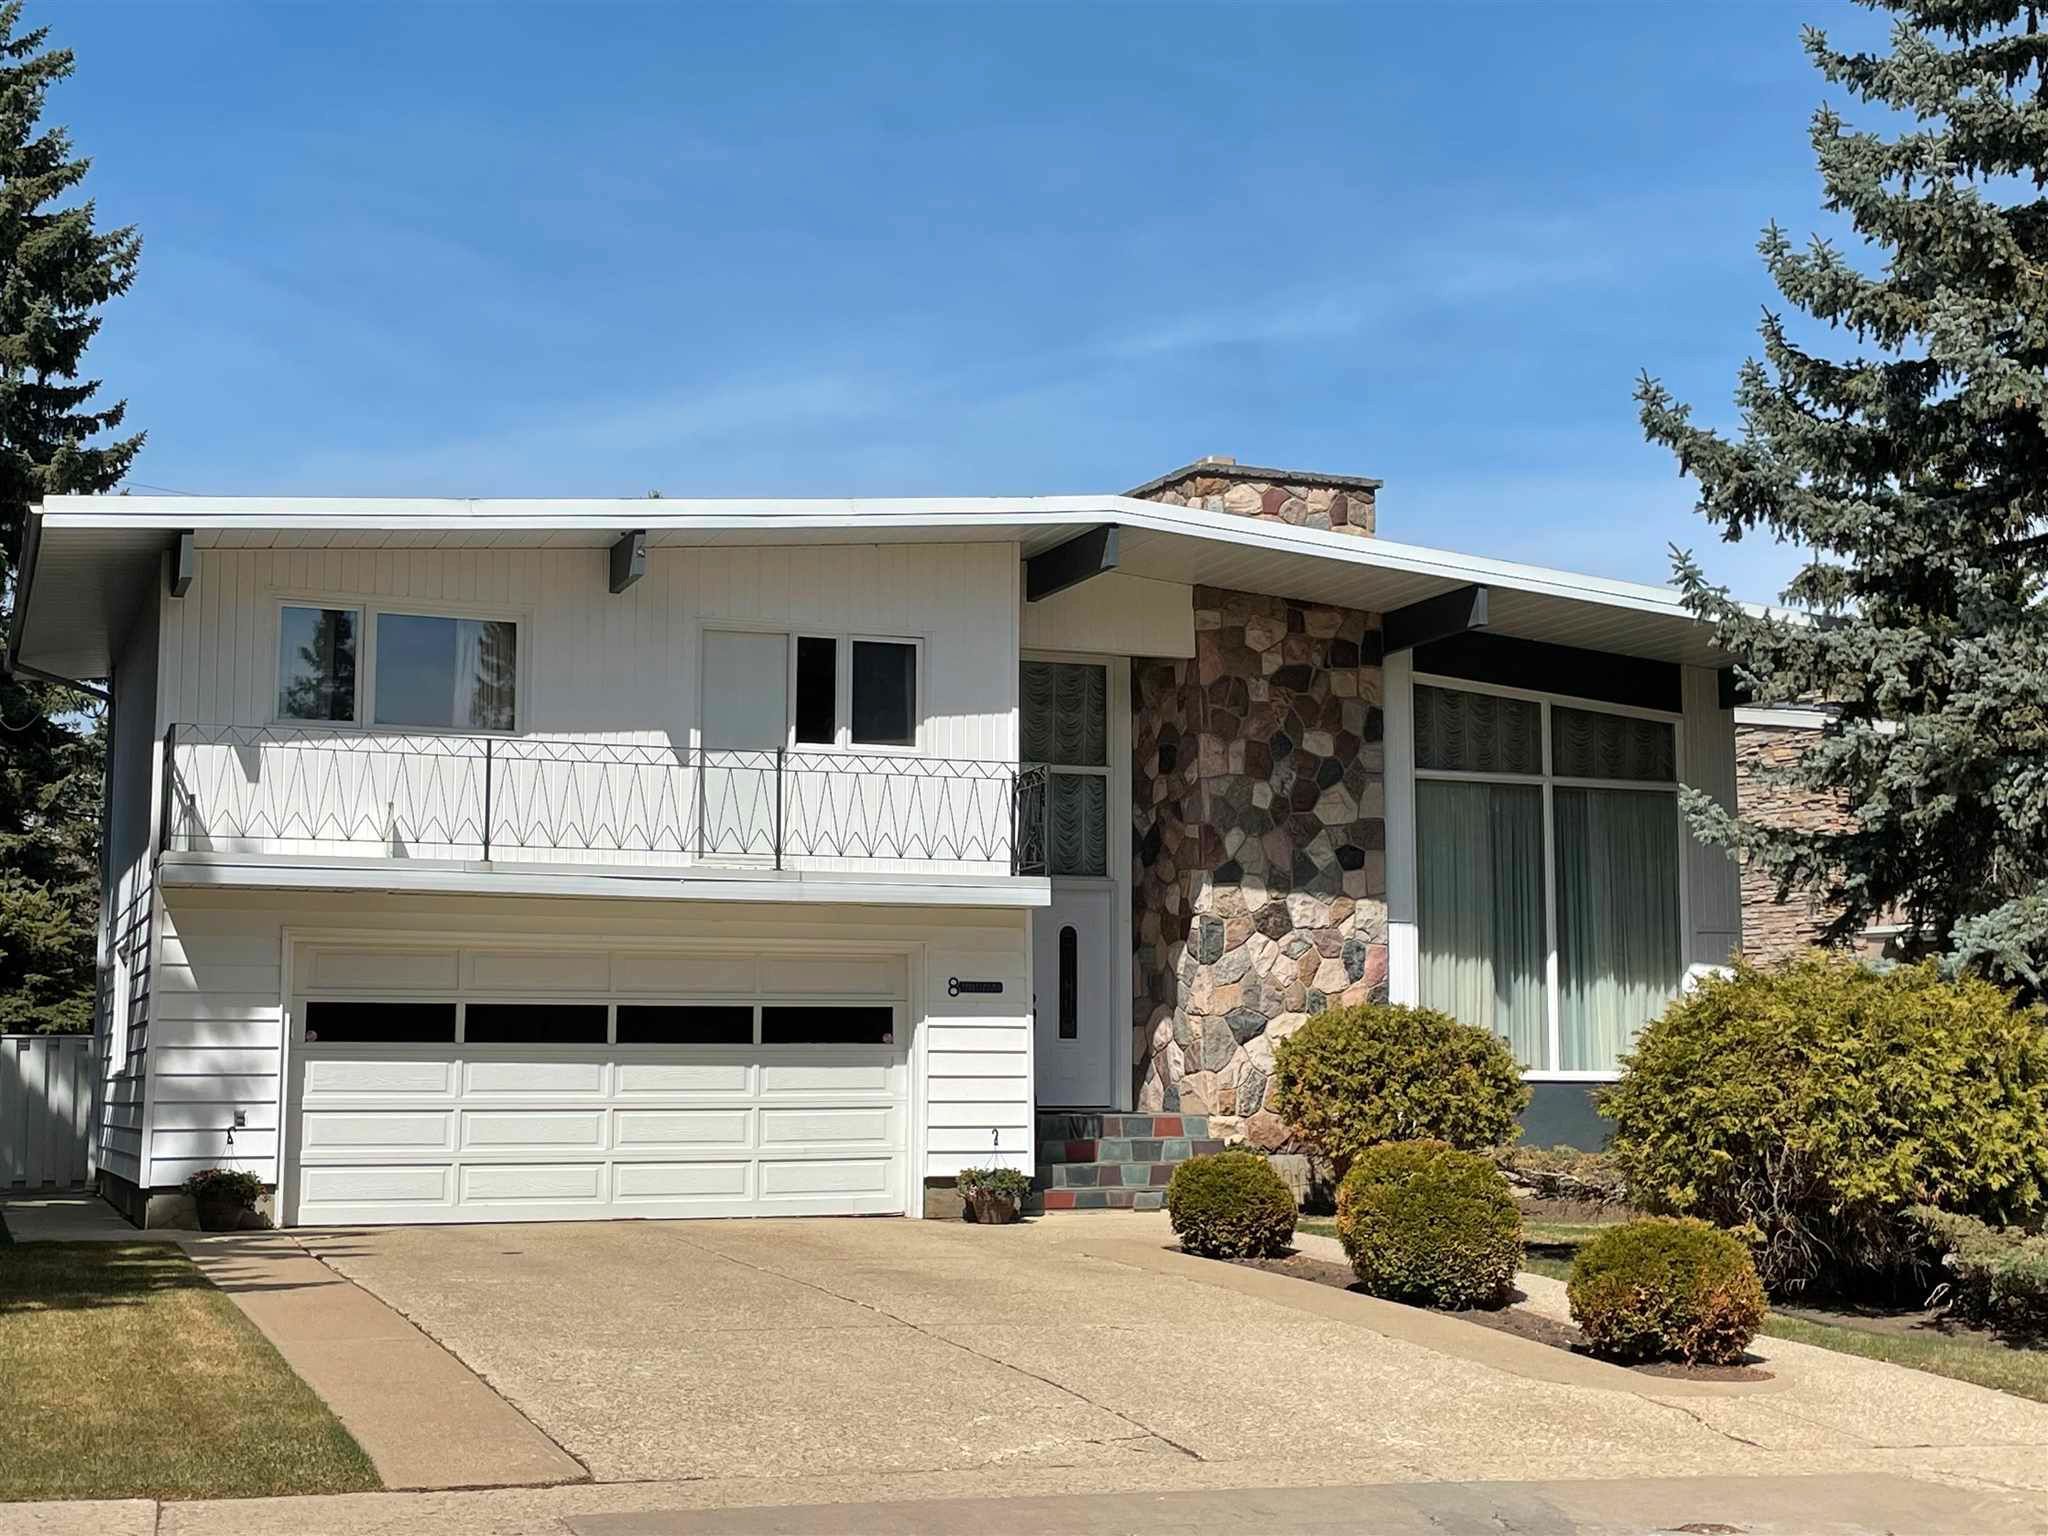 Main Photo: 8 VALLEYVIEW Crescent in Edmonton: Zone 10 House for sale : MLS®# E4249401